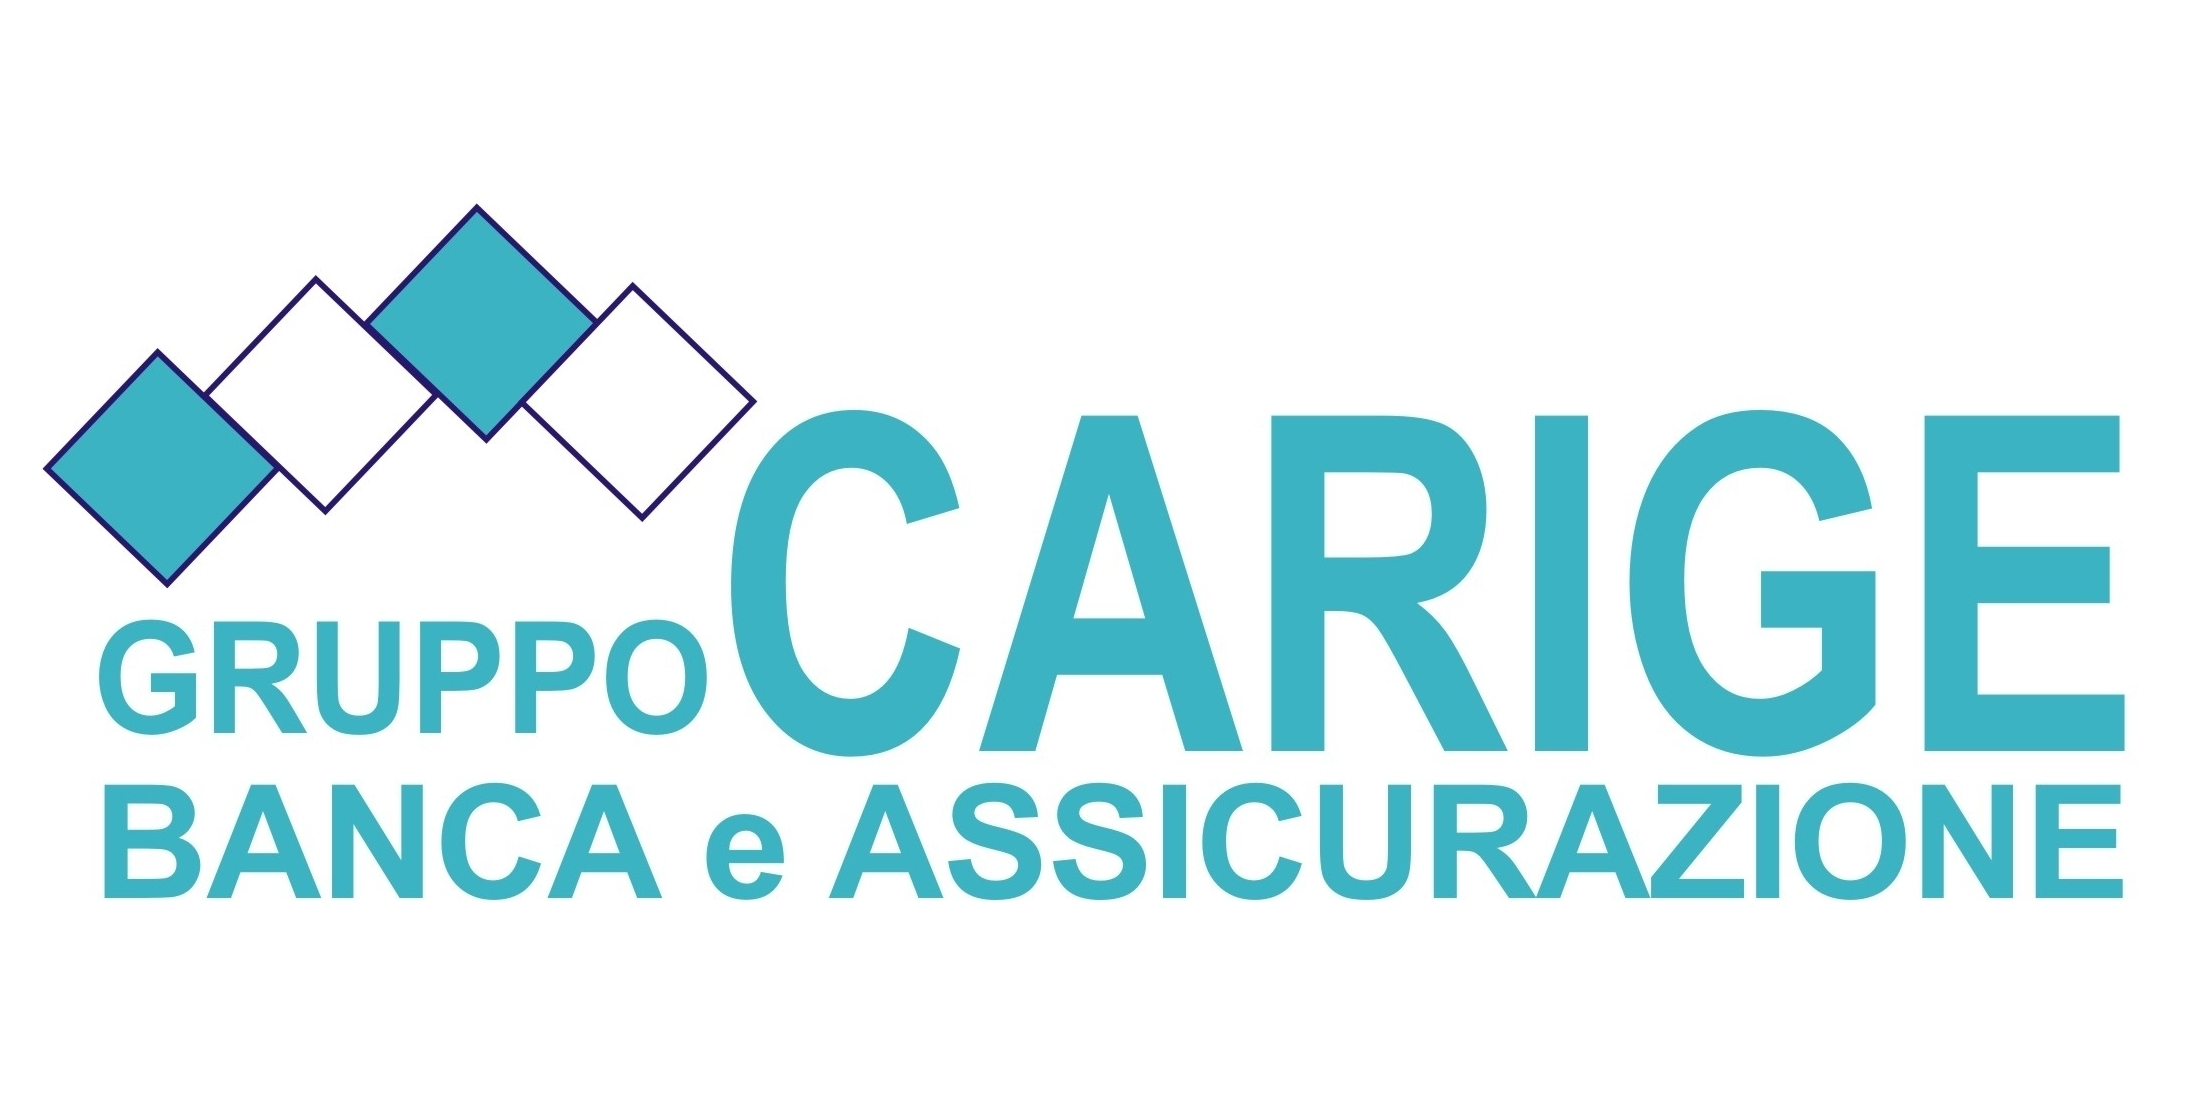 Banca Carige Logo photo - 1